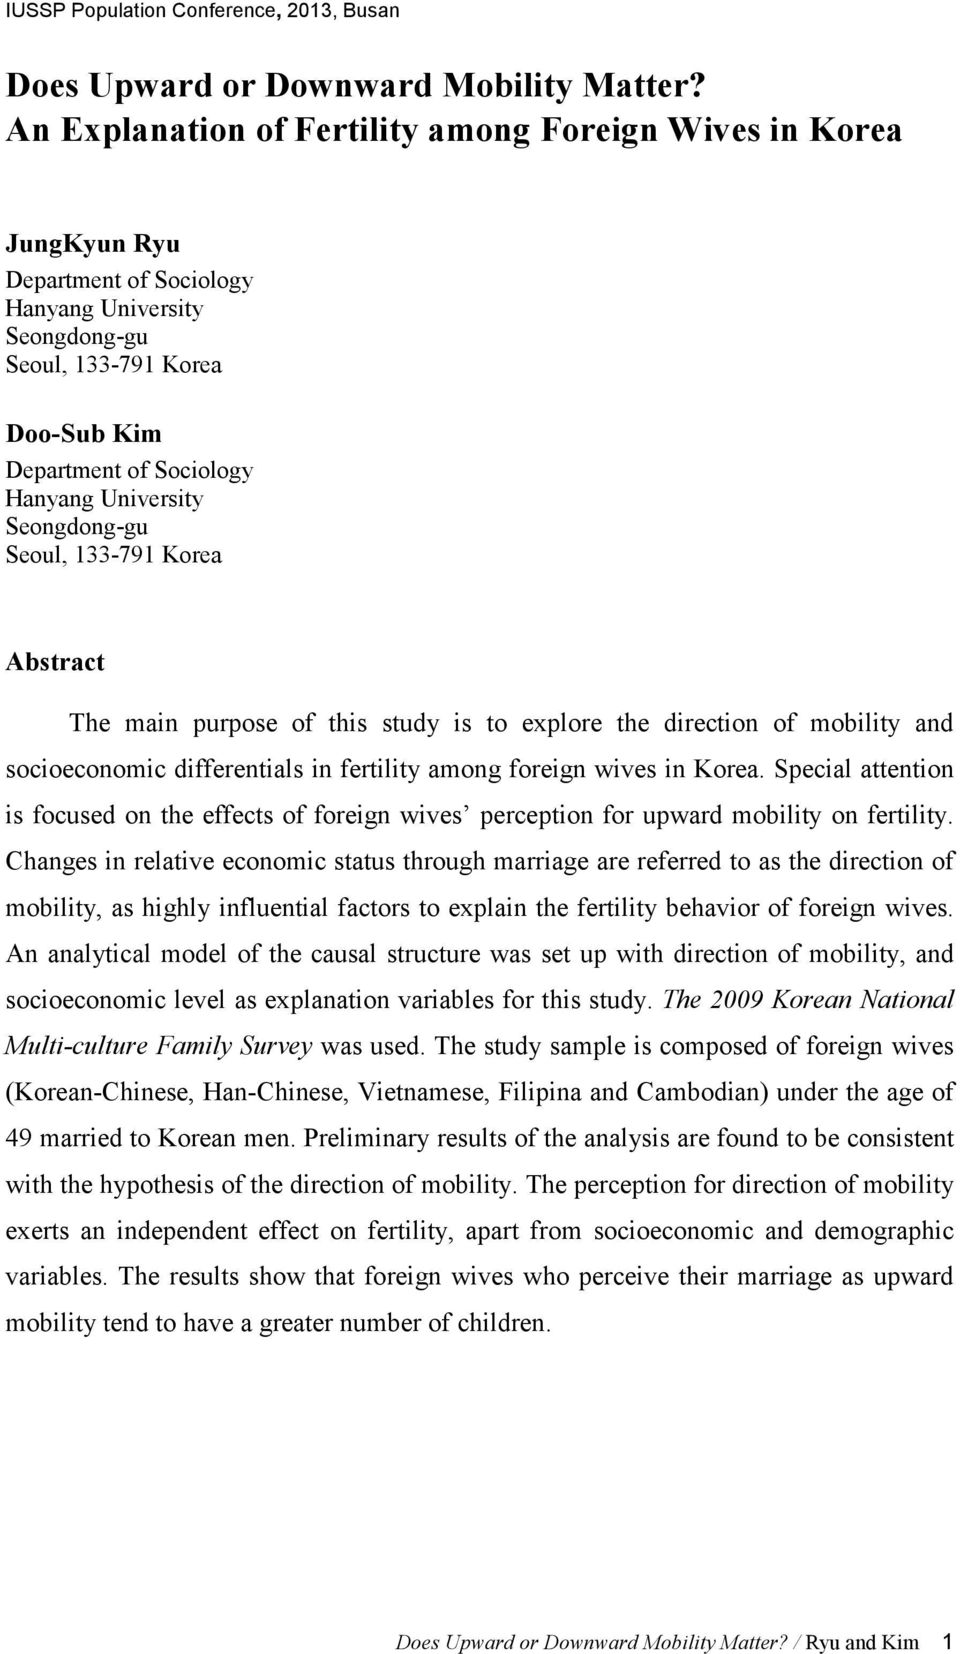 Abstract The main purpose of this study is to explore the direction of mobility and socioeconomic differentials in fertility among foreign wives in Korea.